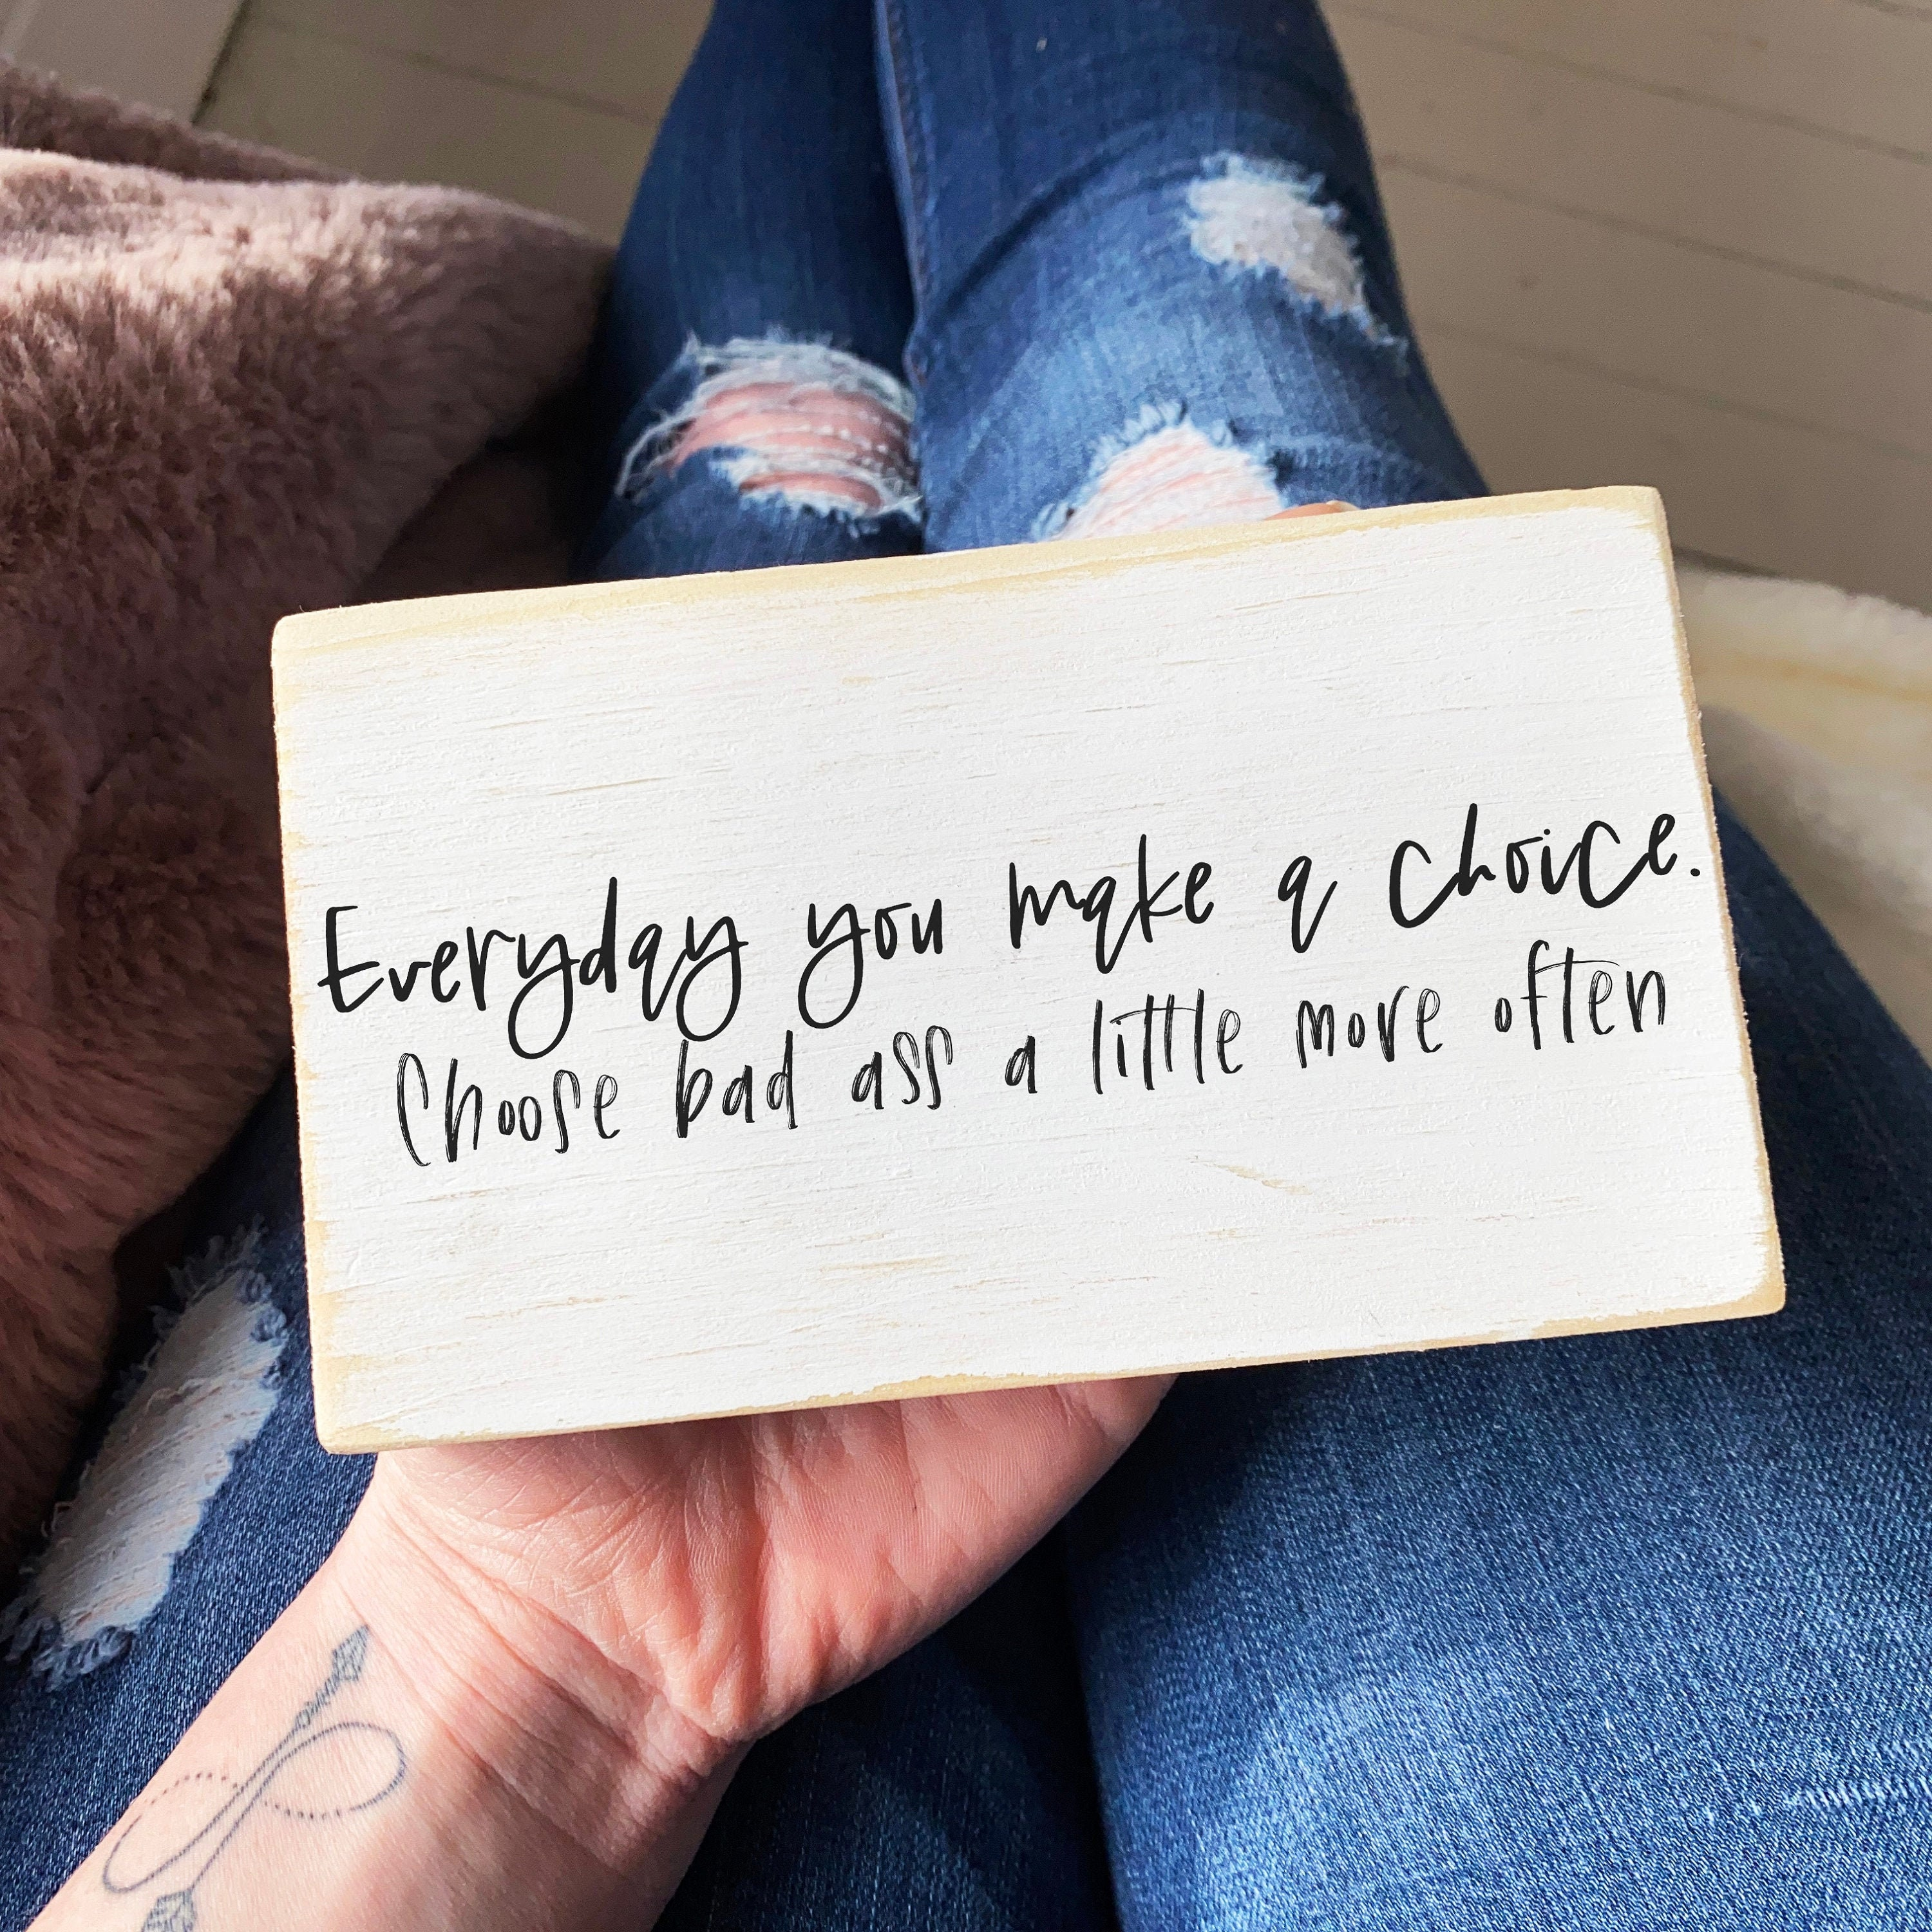 Everyday you make a choice choose bad ass a little more often   inspirational mini wood sign  quote block  mini signs for tiered trays